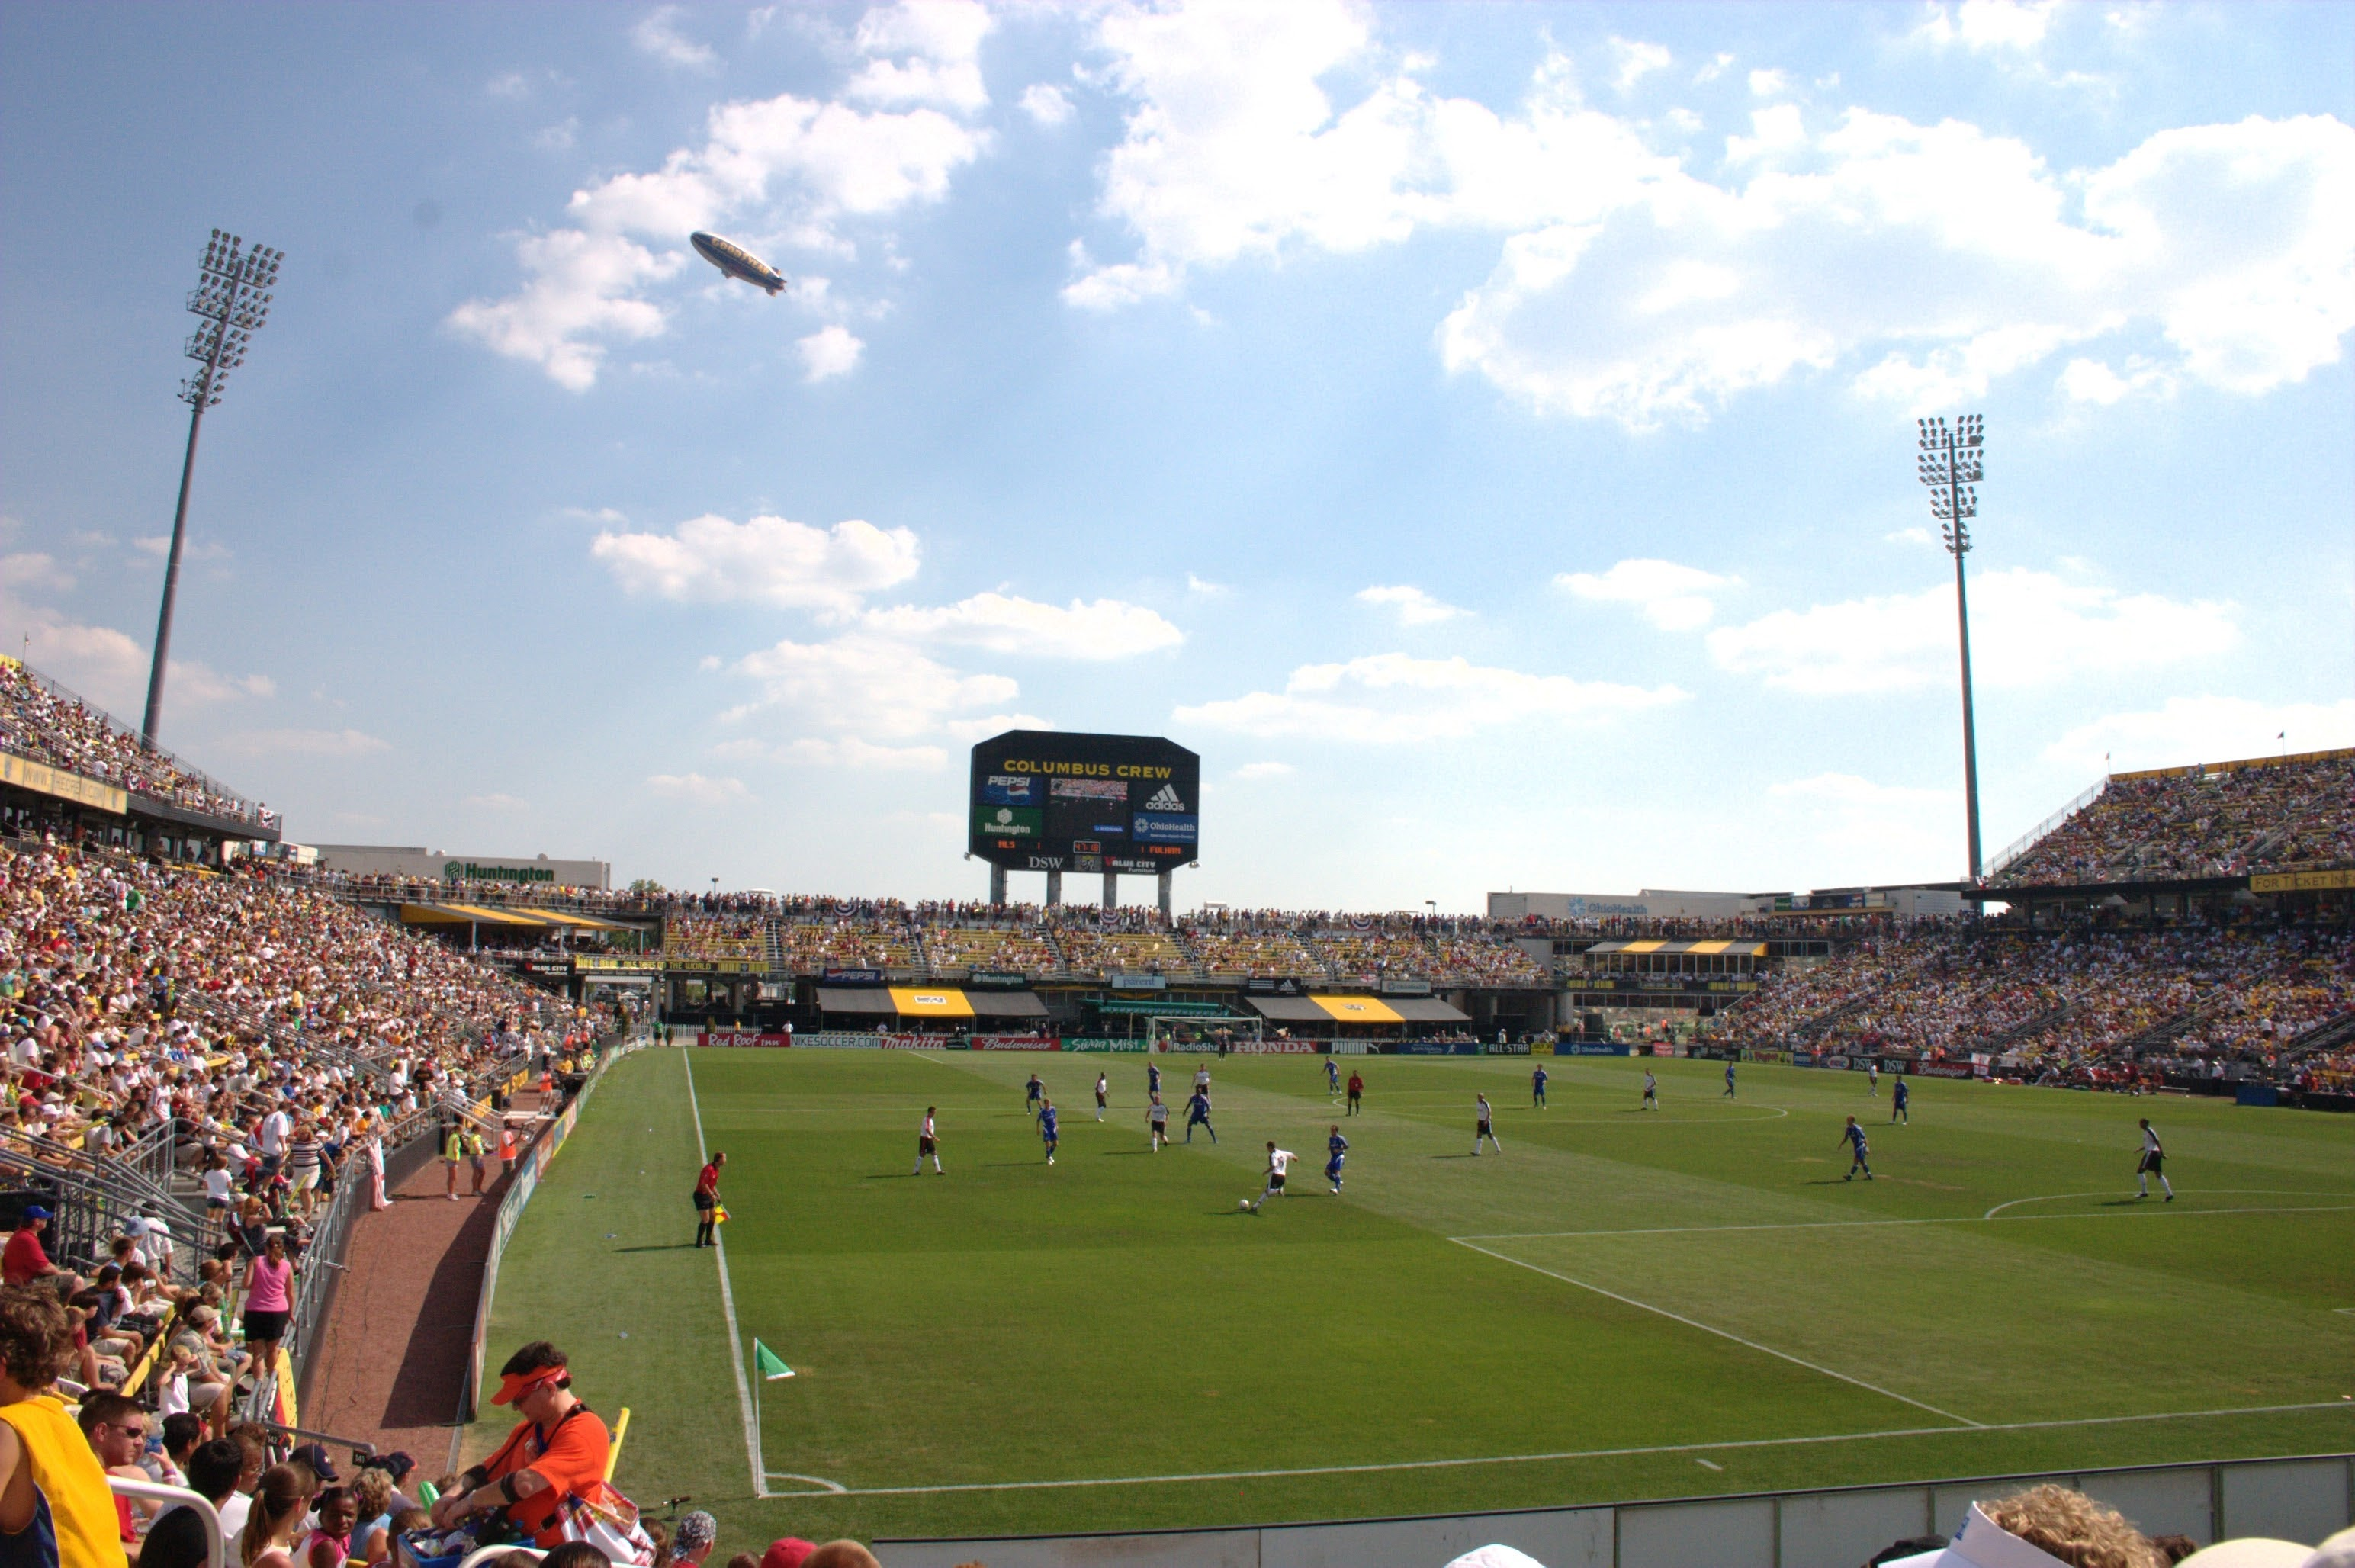 7aace8890382 Columbus Crew SC - Wikiwand